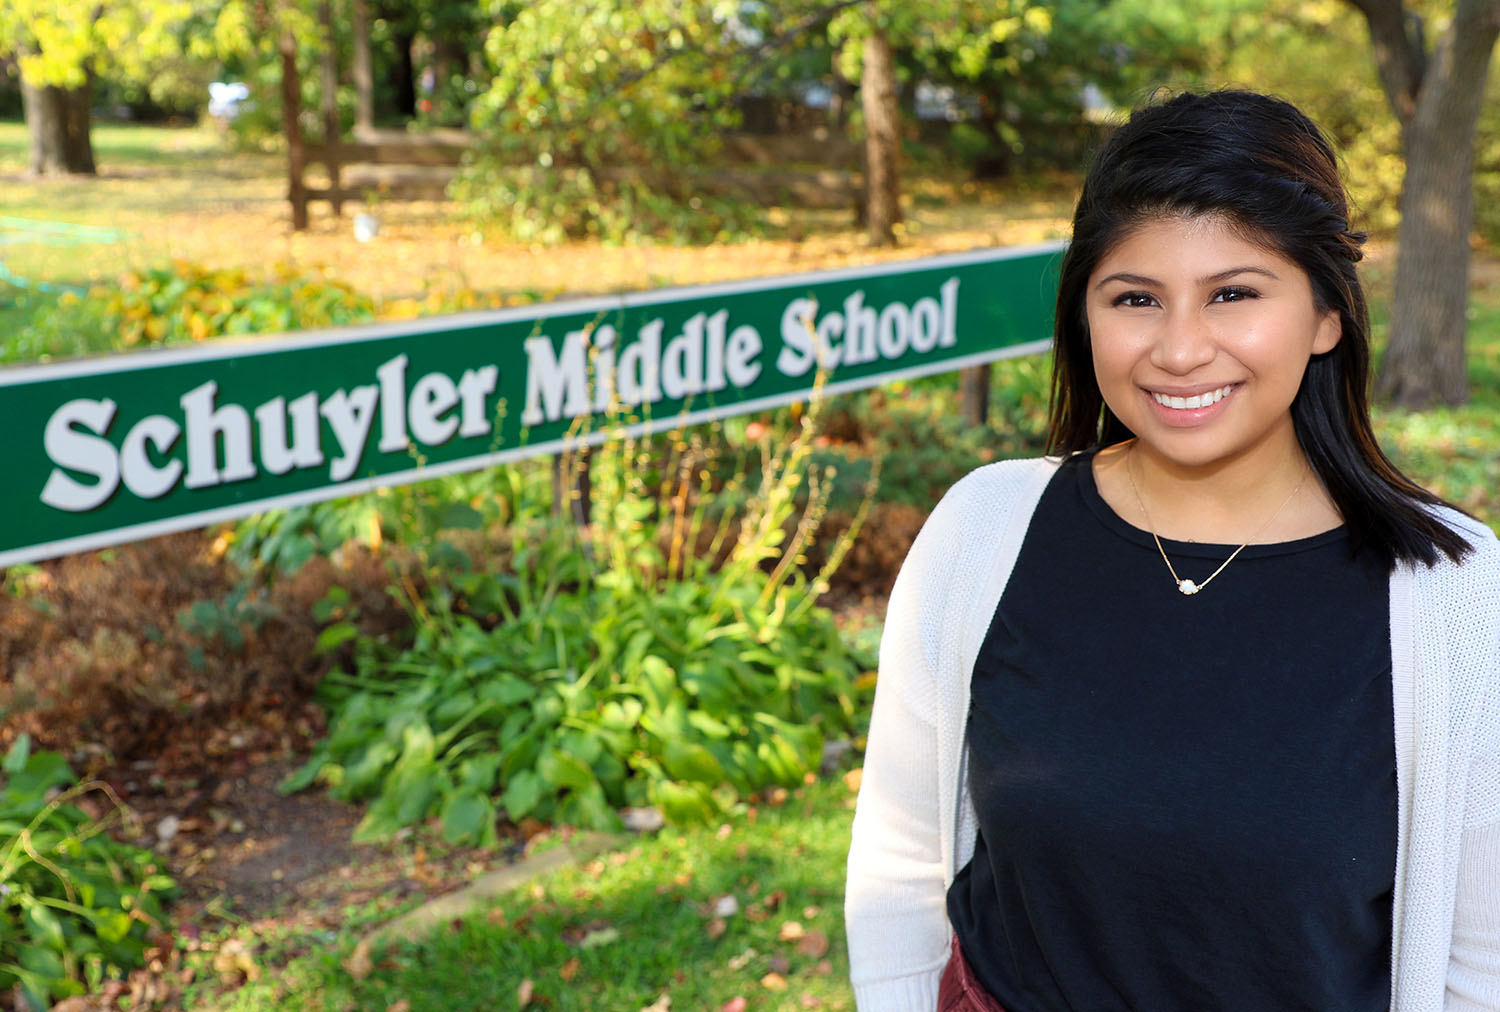 Odalys Cruz shares her love for learning with students at Schuyler Middle School. The 24-year-old returned to her hometown in 2018 after graduating from UNK.